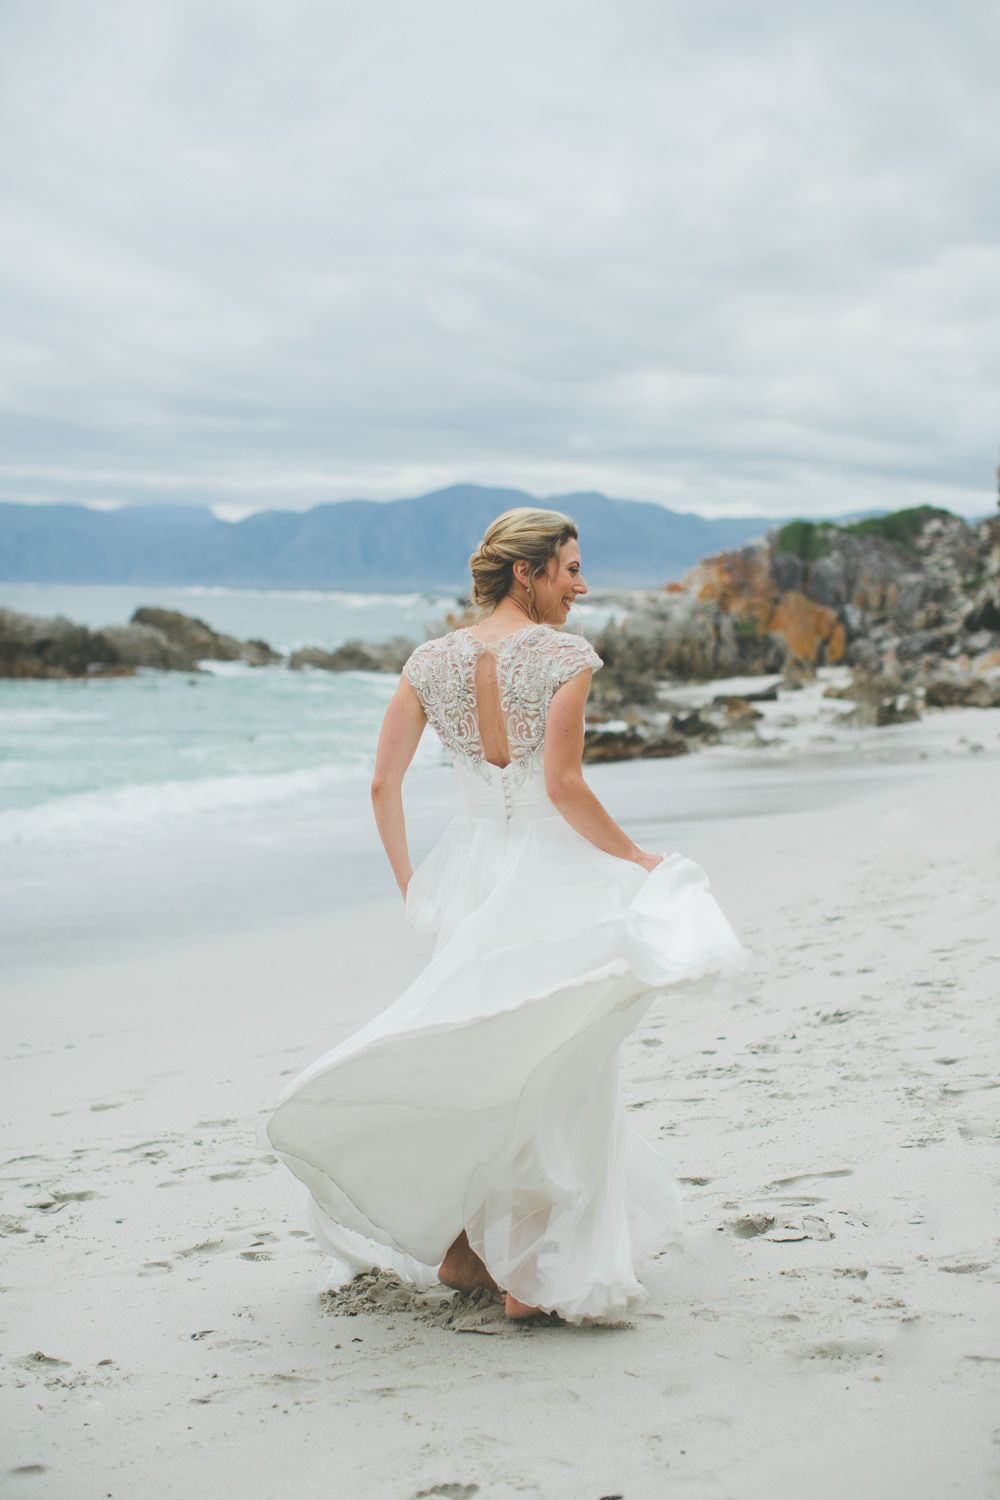 Suzanne neville cherish wedding dress in south africa suzanne